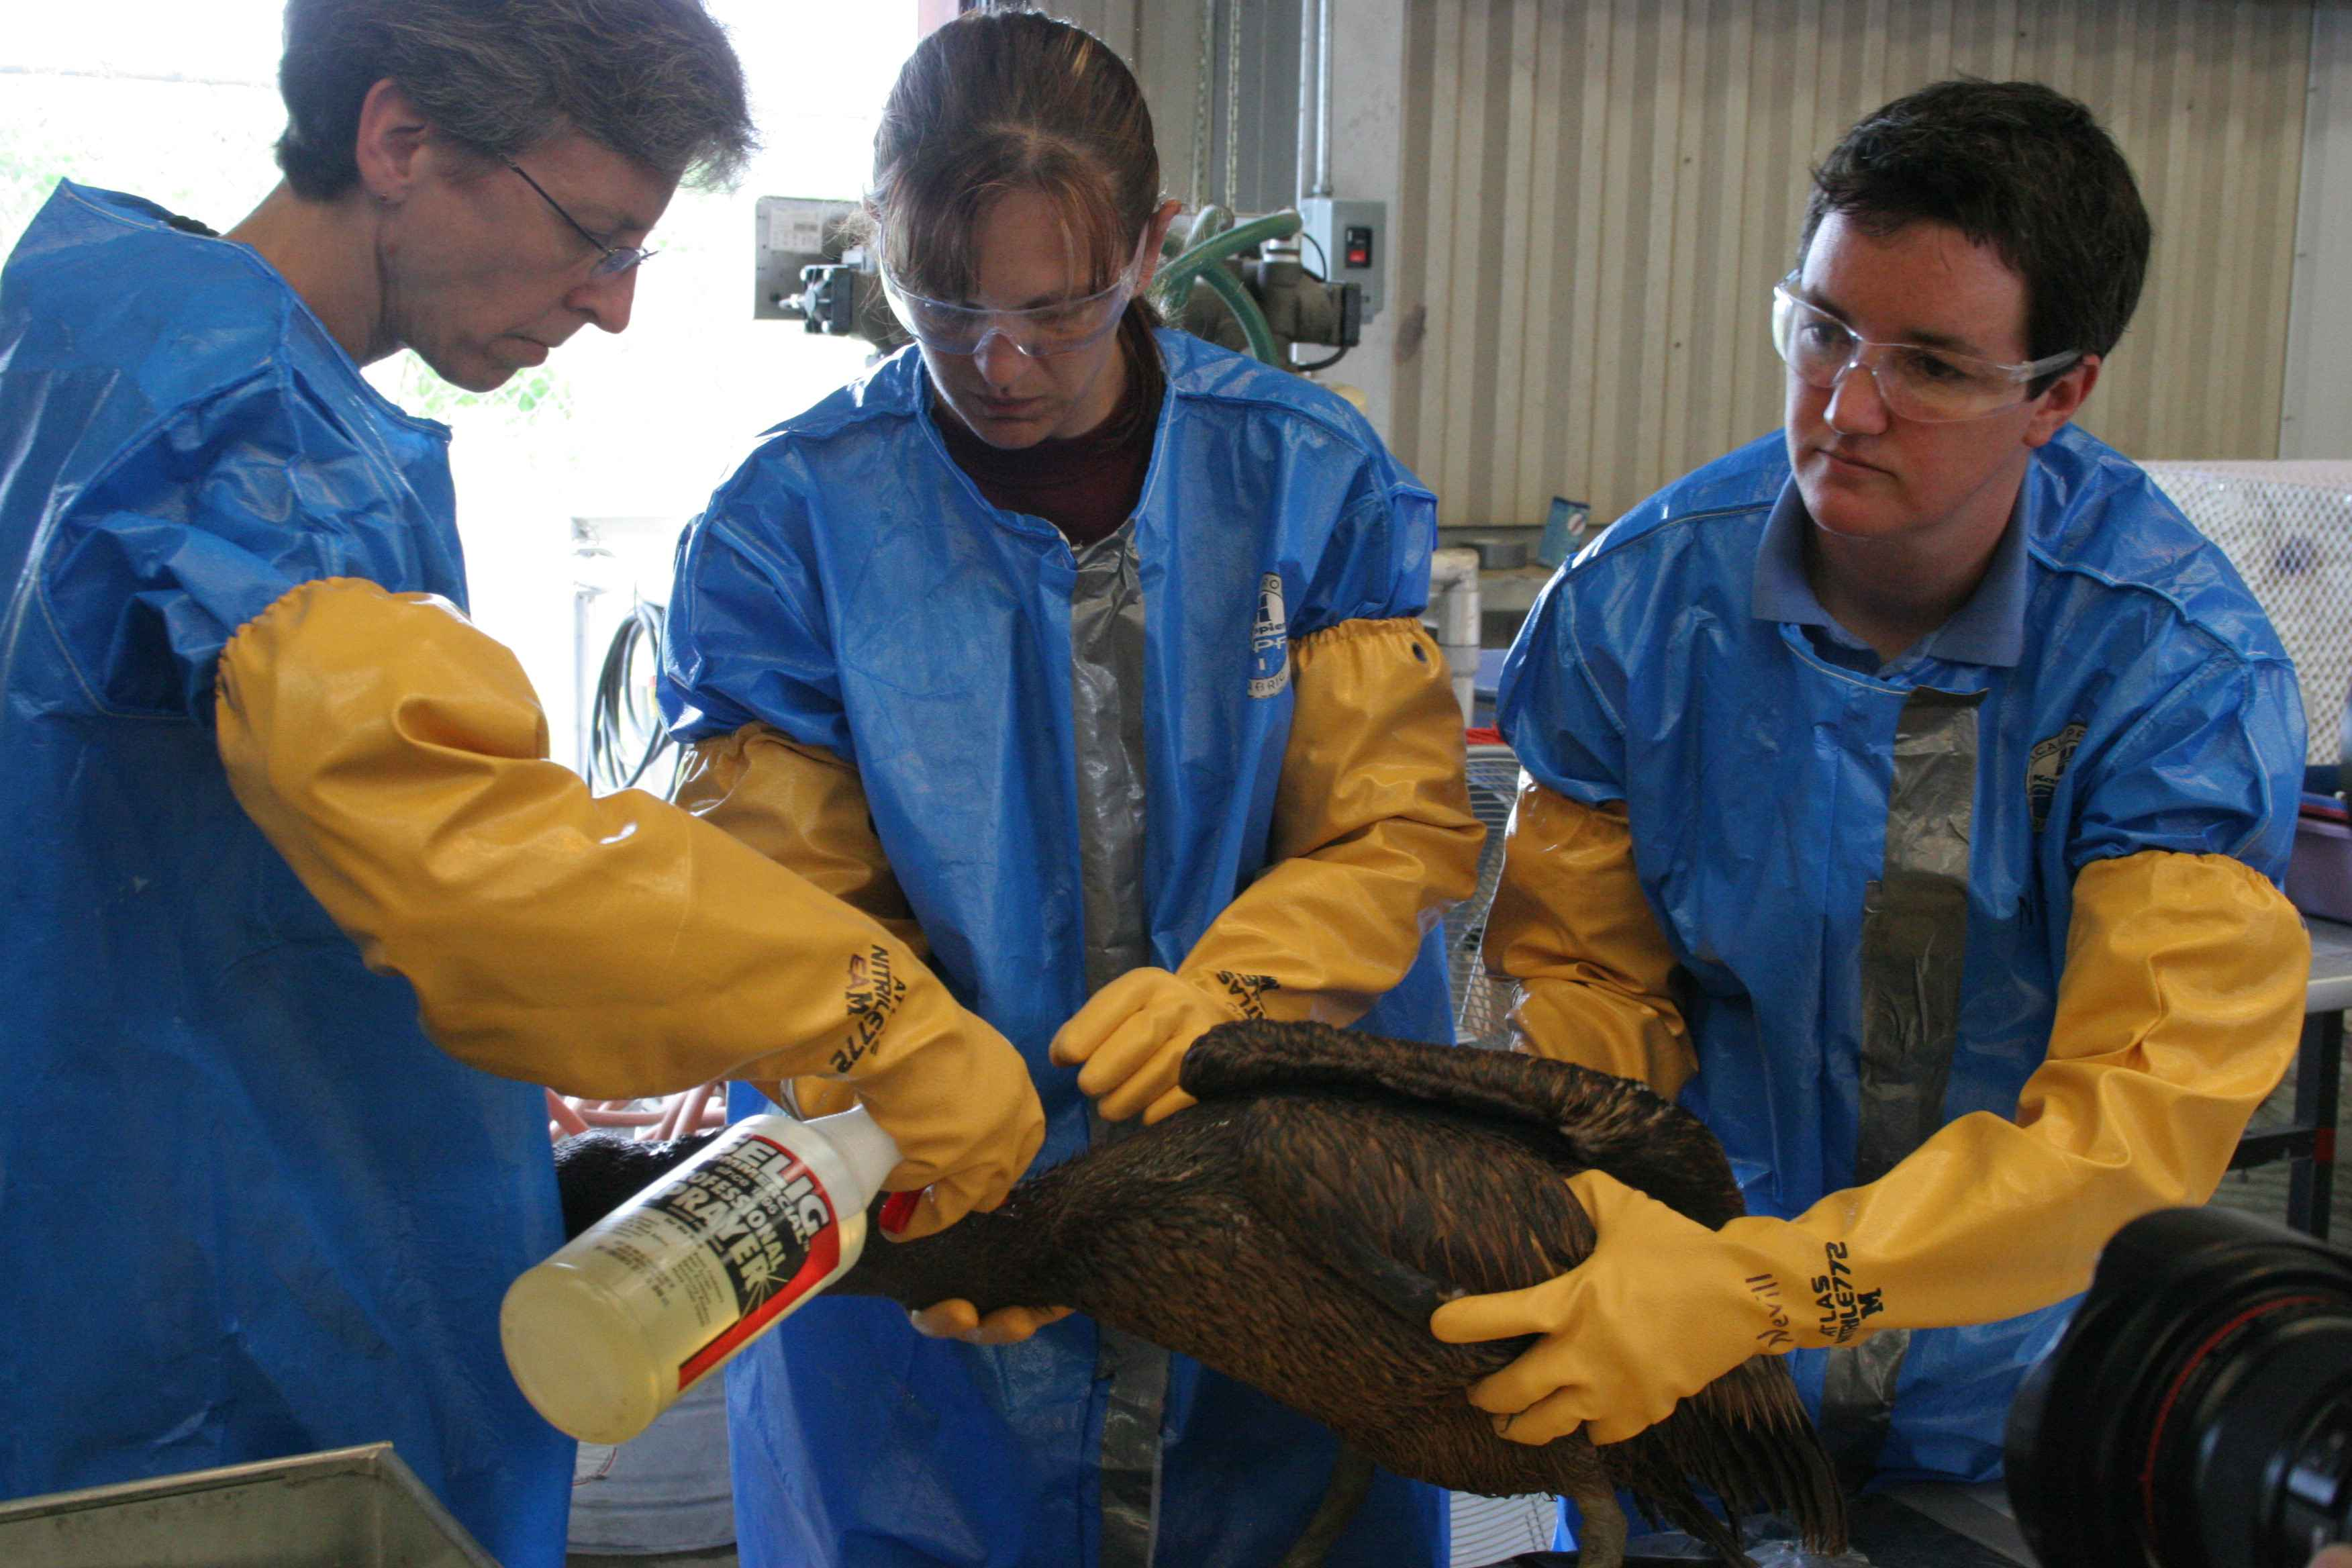 People wearing protective gear washing off an oil-covered bird.